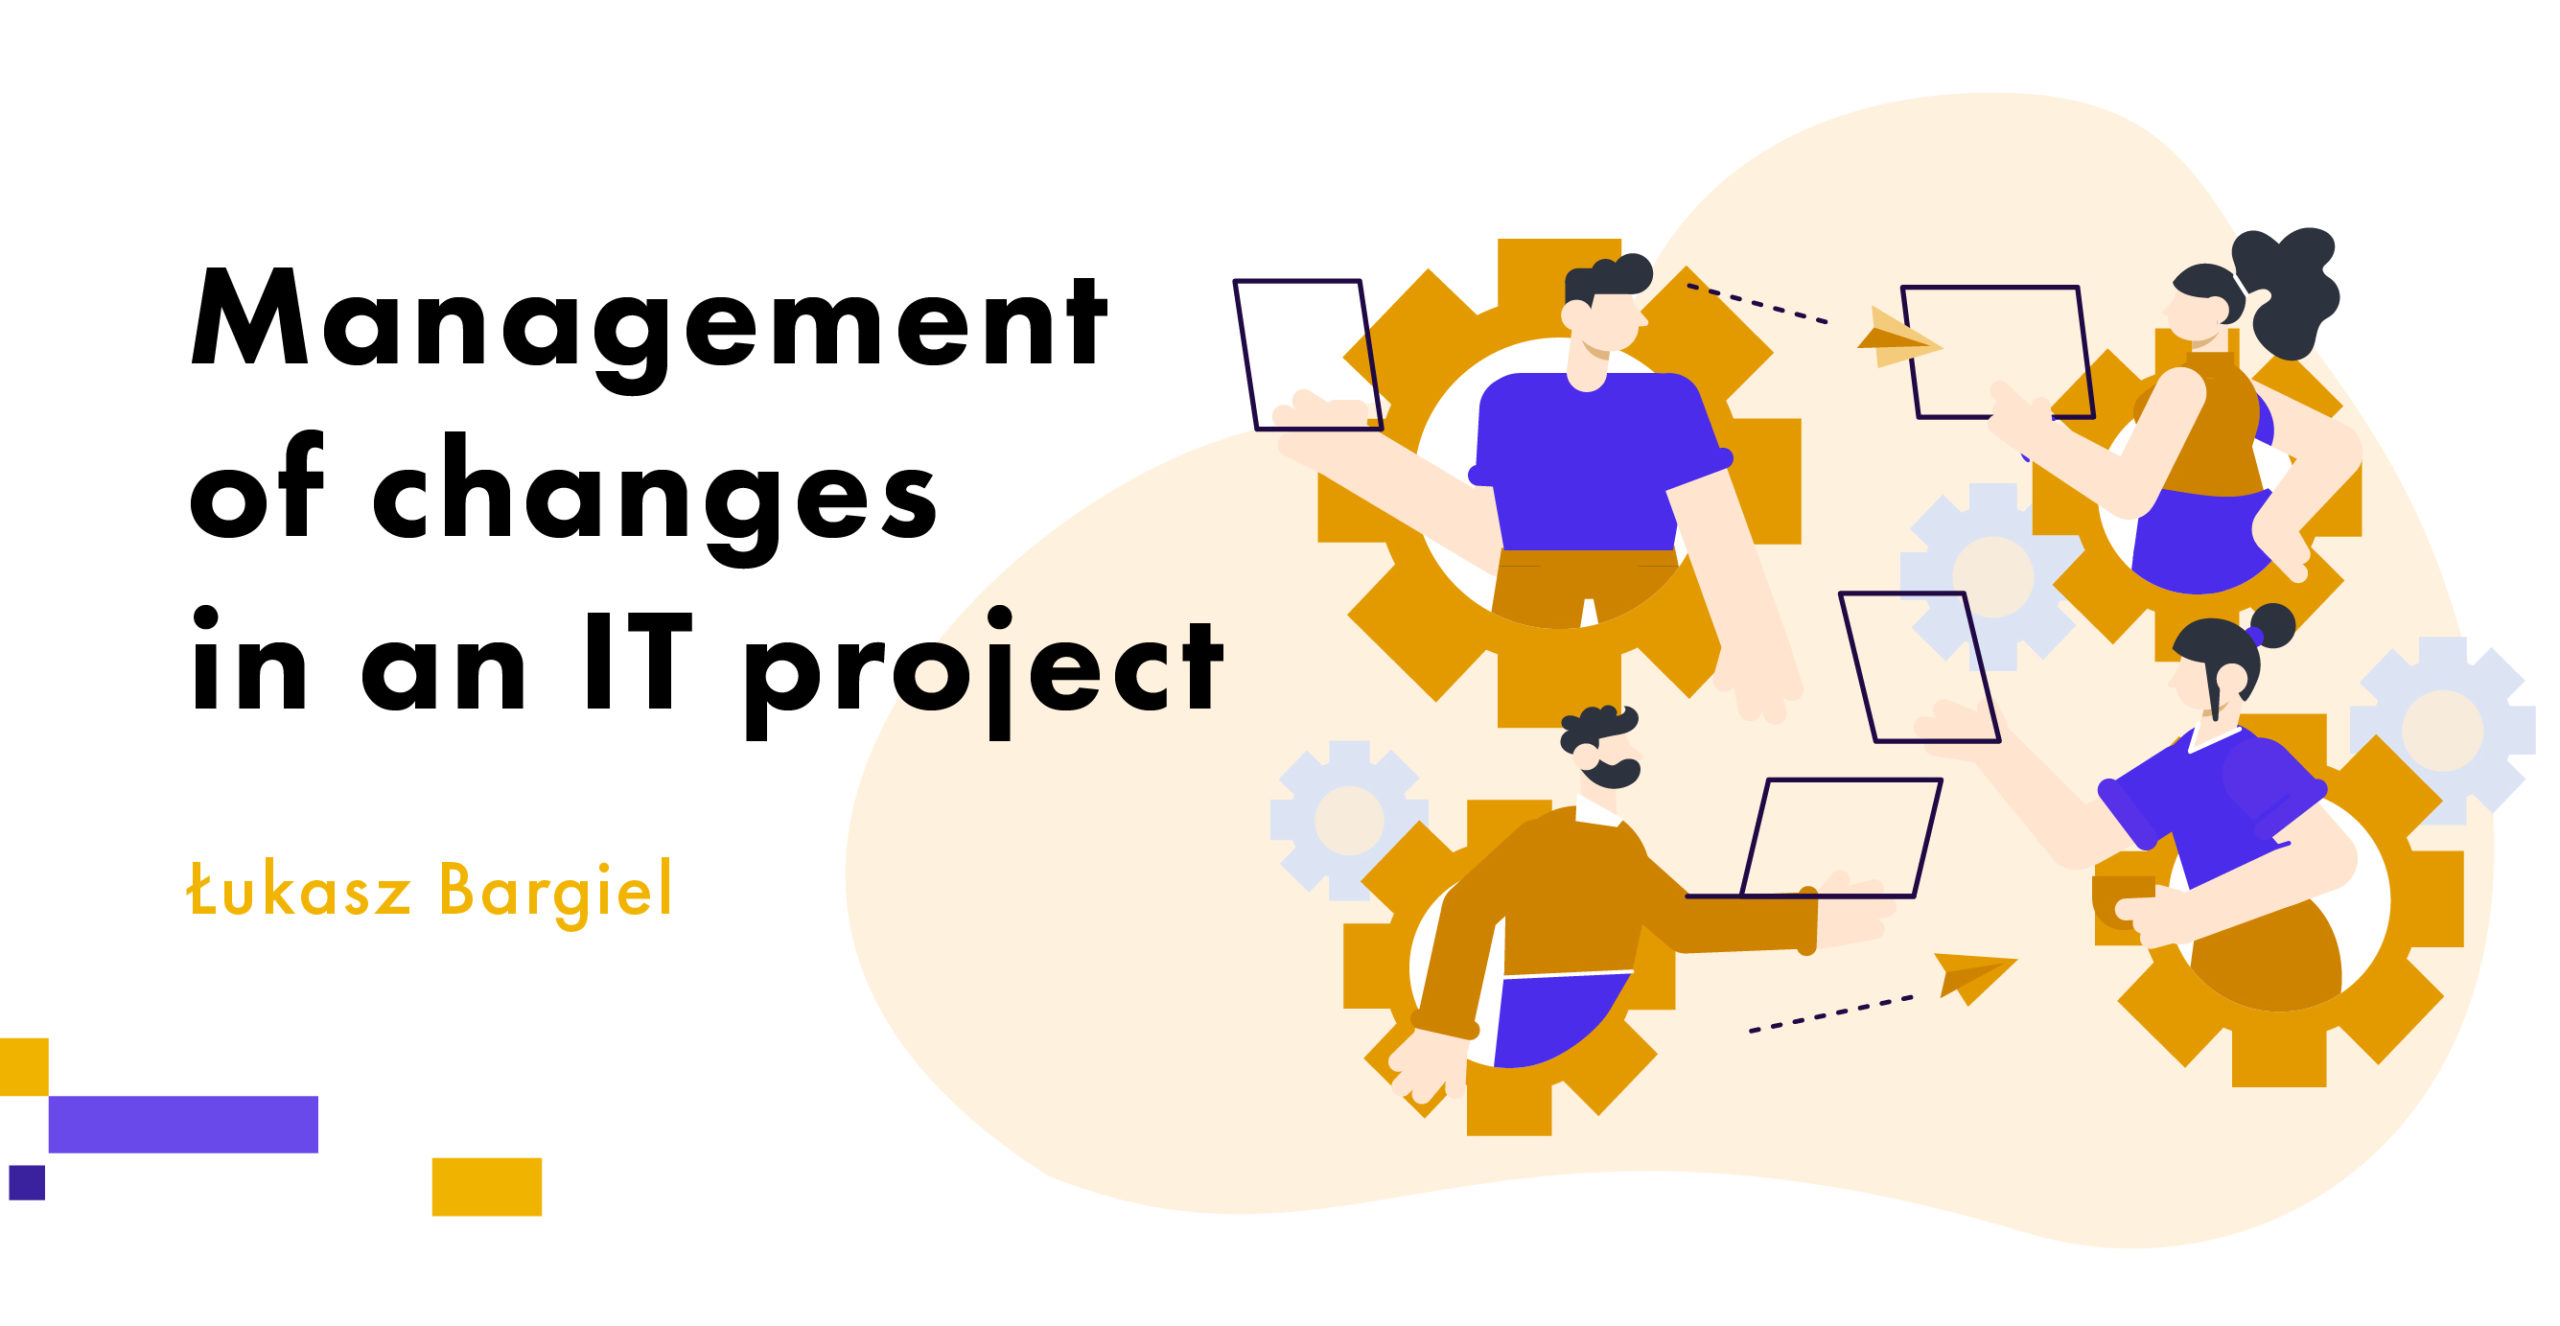 management-of-changes-in-an-IT-project